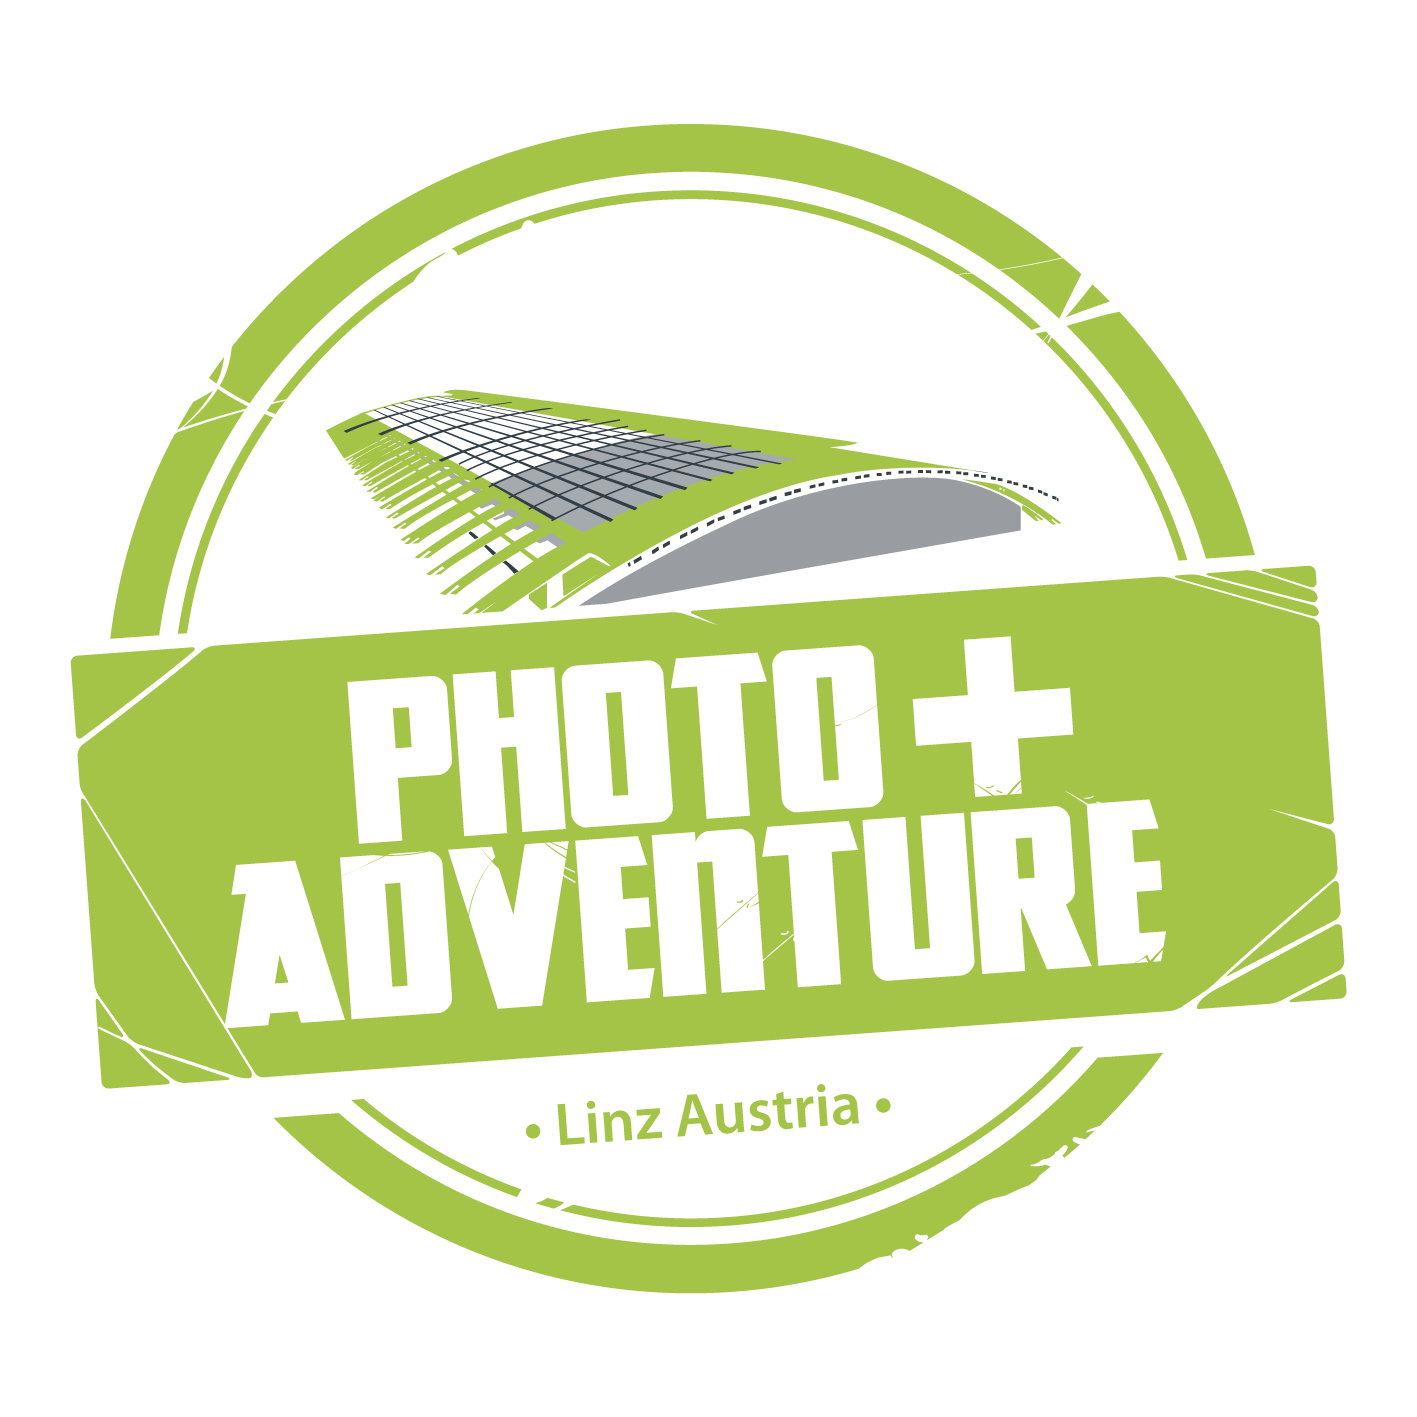 Copyright by Photo+Adventure